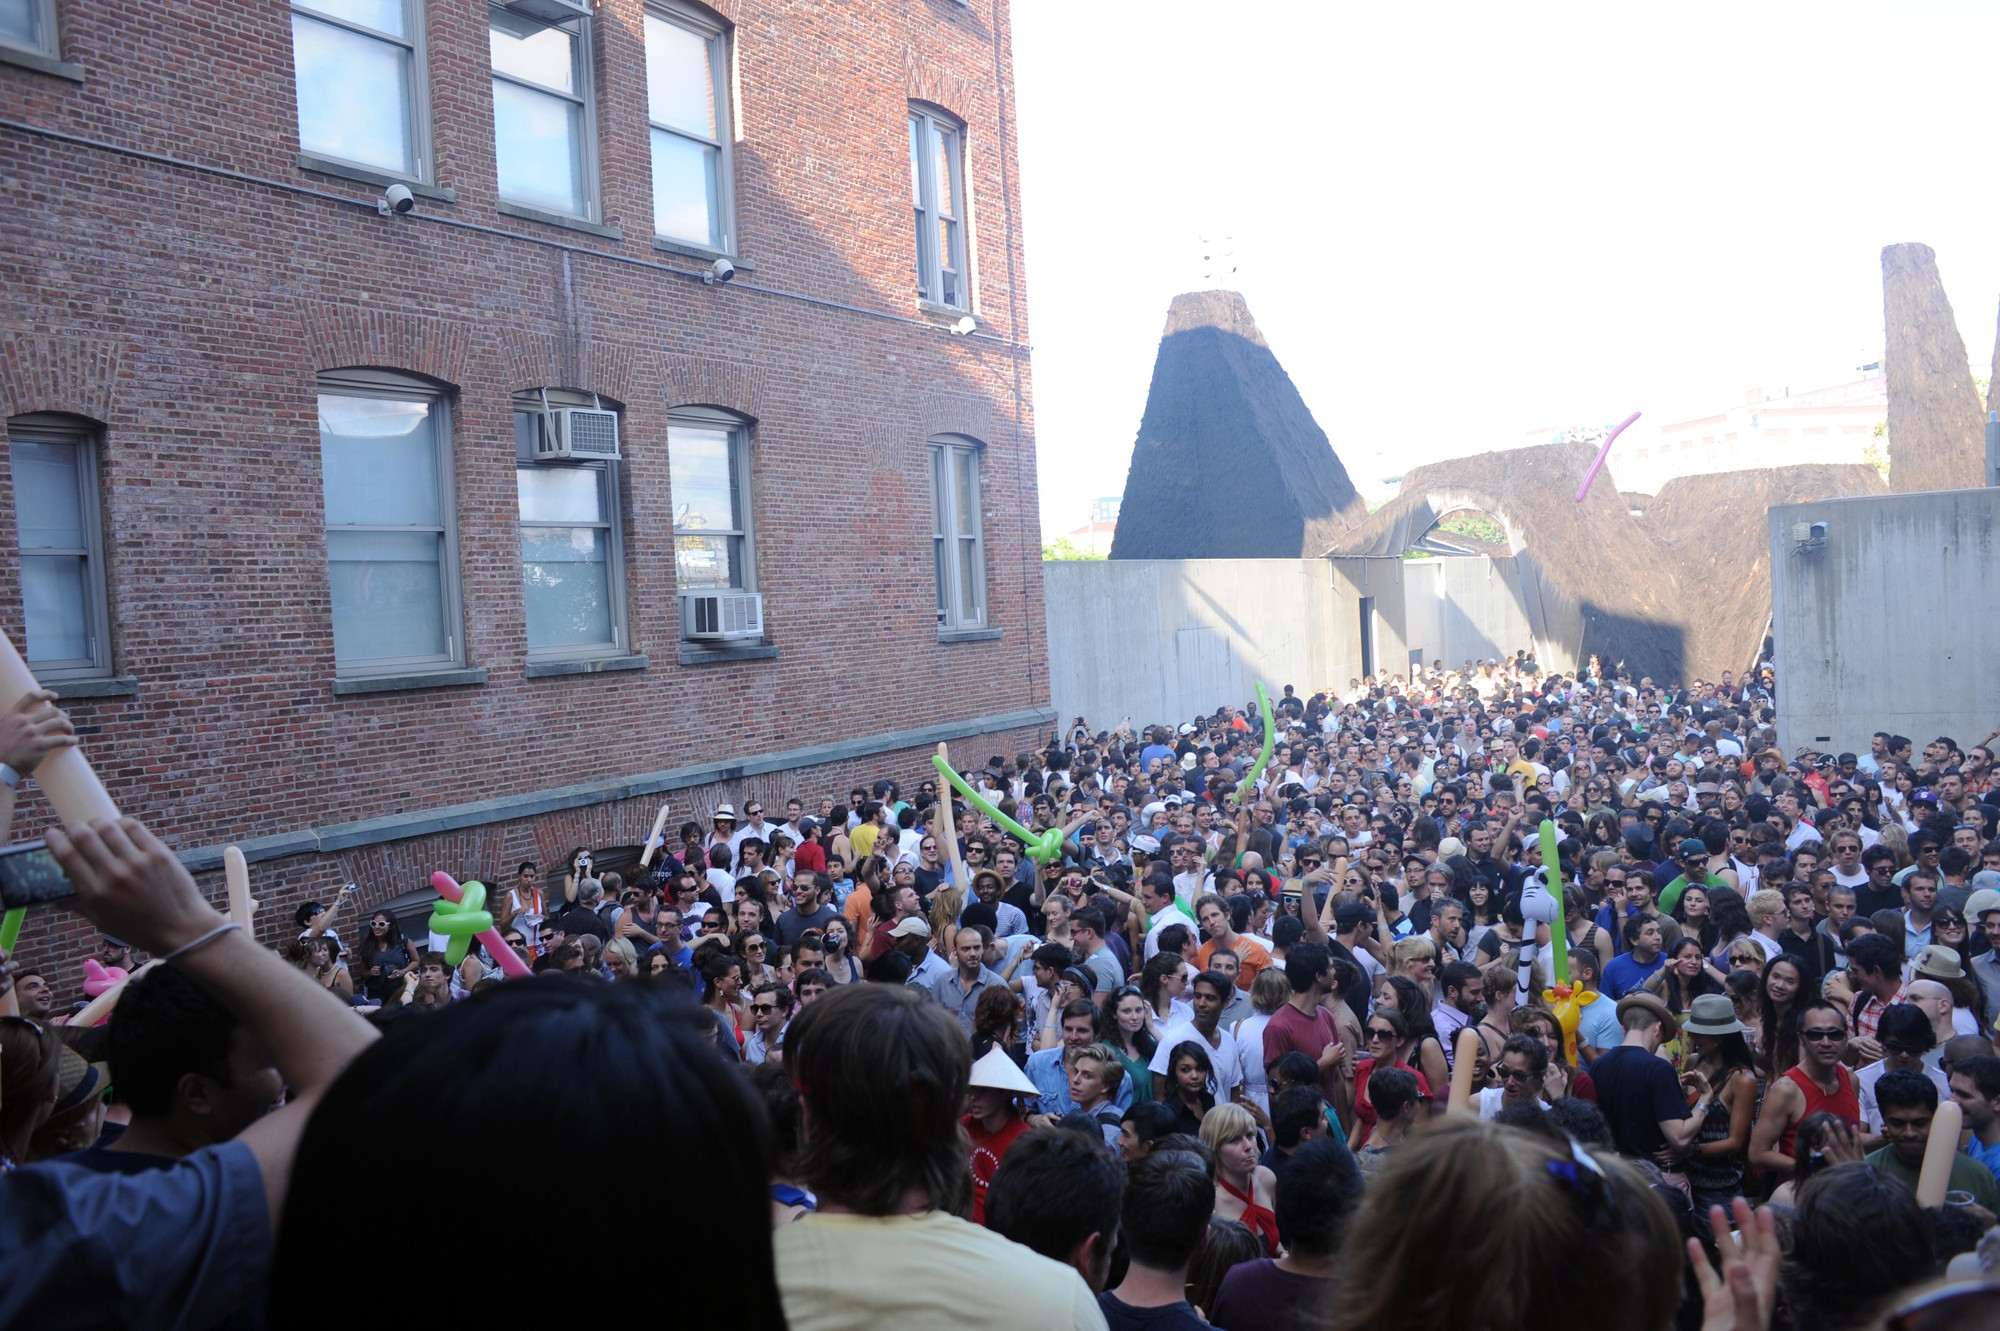 Warm Up, MoMA PS1, 2009. Photo: Sexe Devres